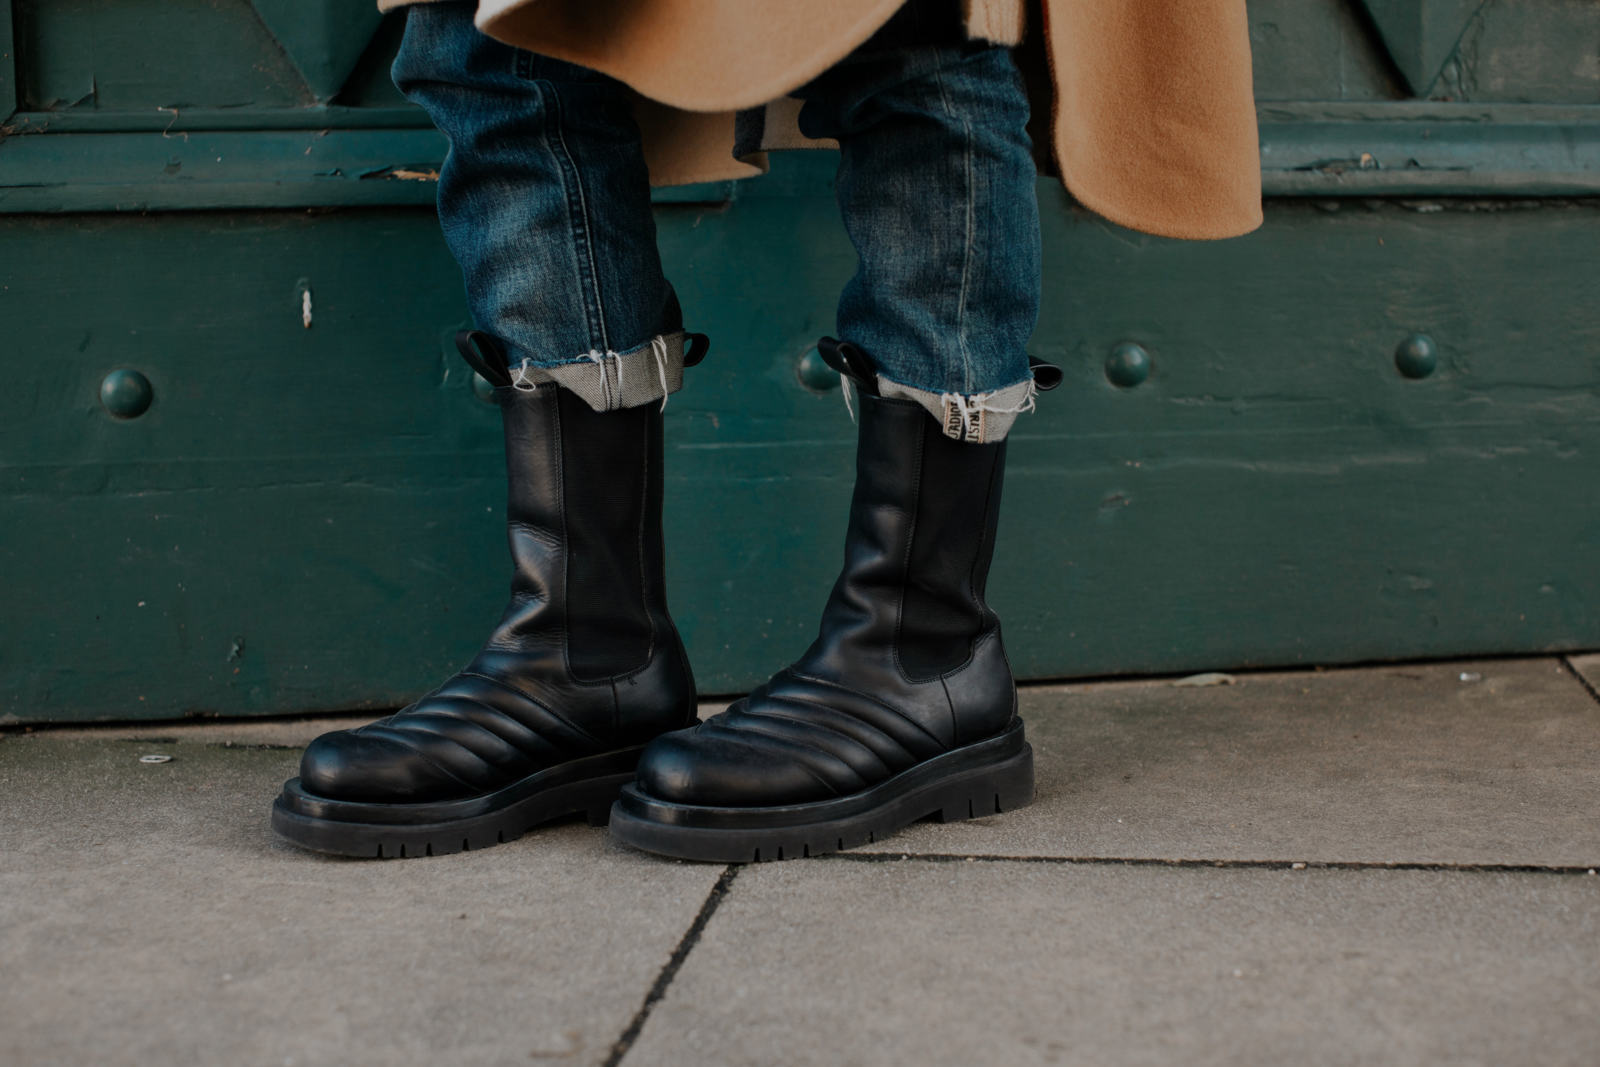 Trend: How to Style the Combat Boot